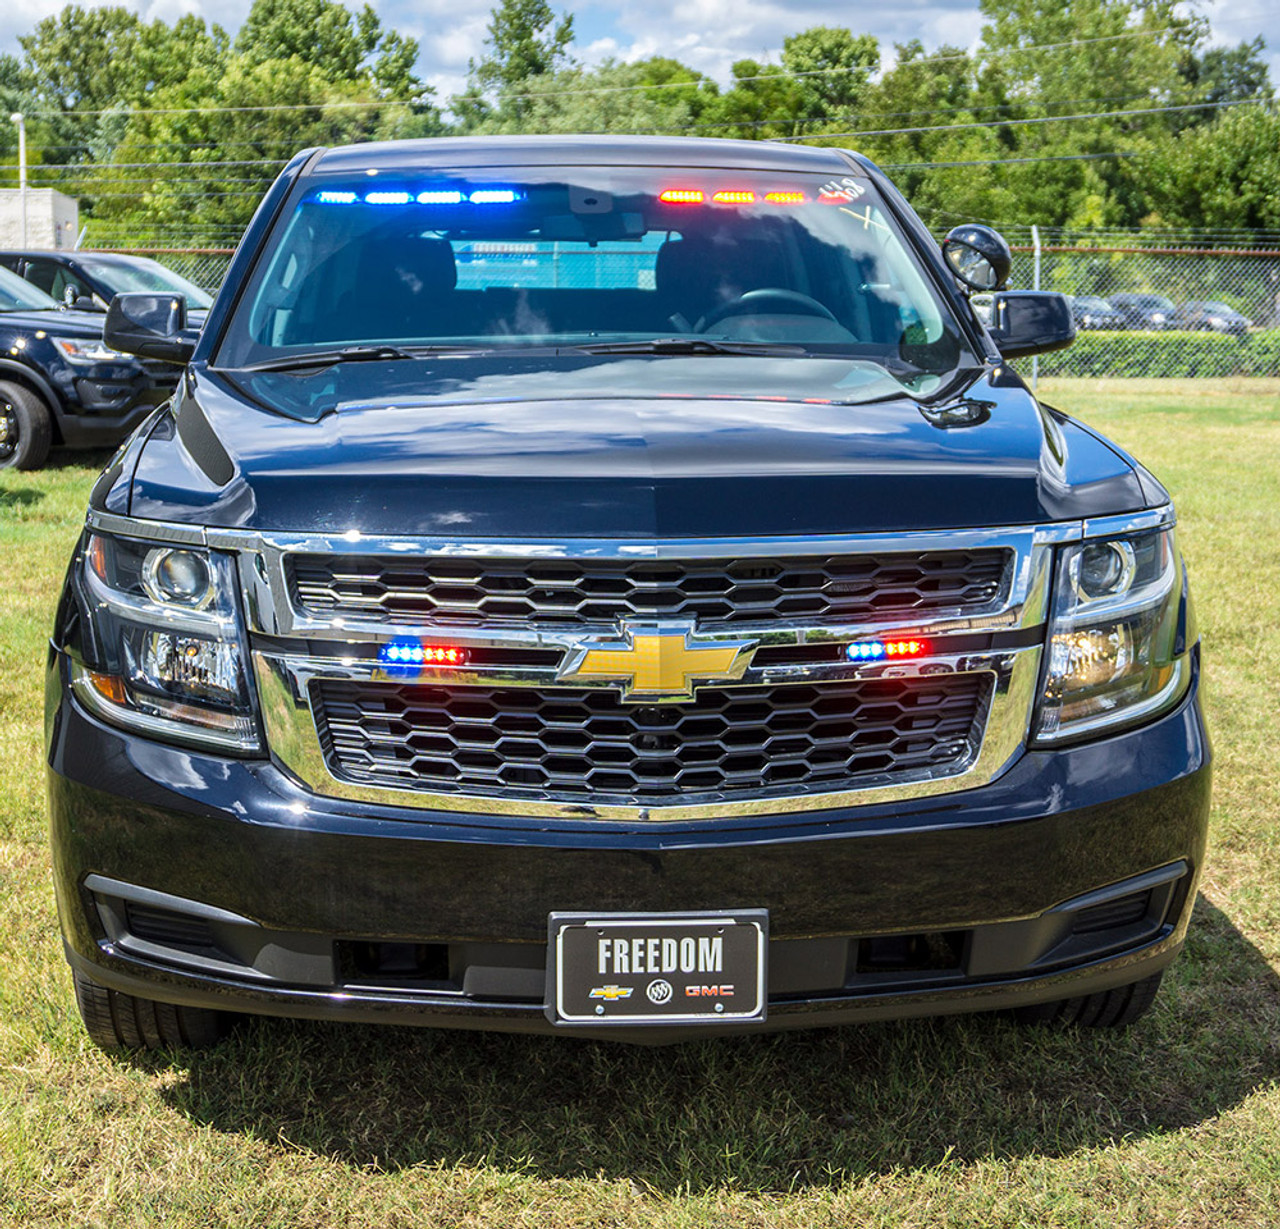 New 2019 Black Chevy Tahoe Police Package PPV V8 2WD, ready to be built as a Slick-Top Admin Package, choose any color LED Lights, + Delivery